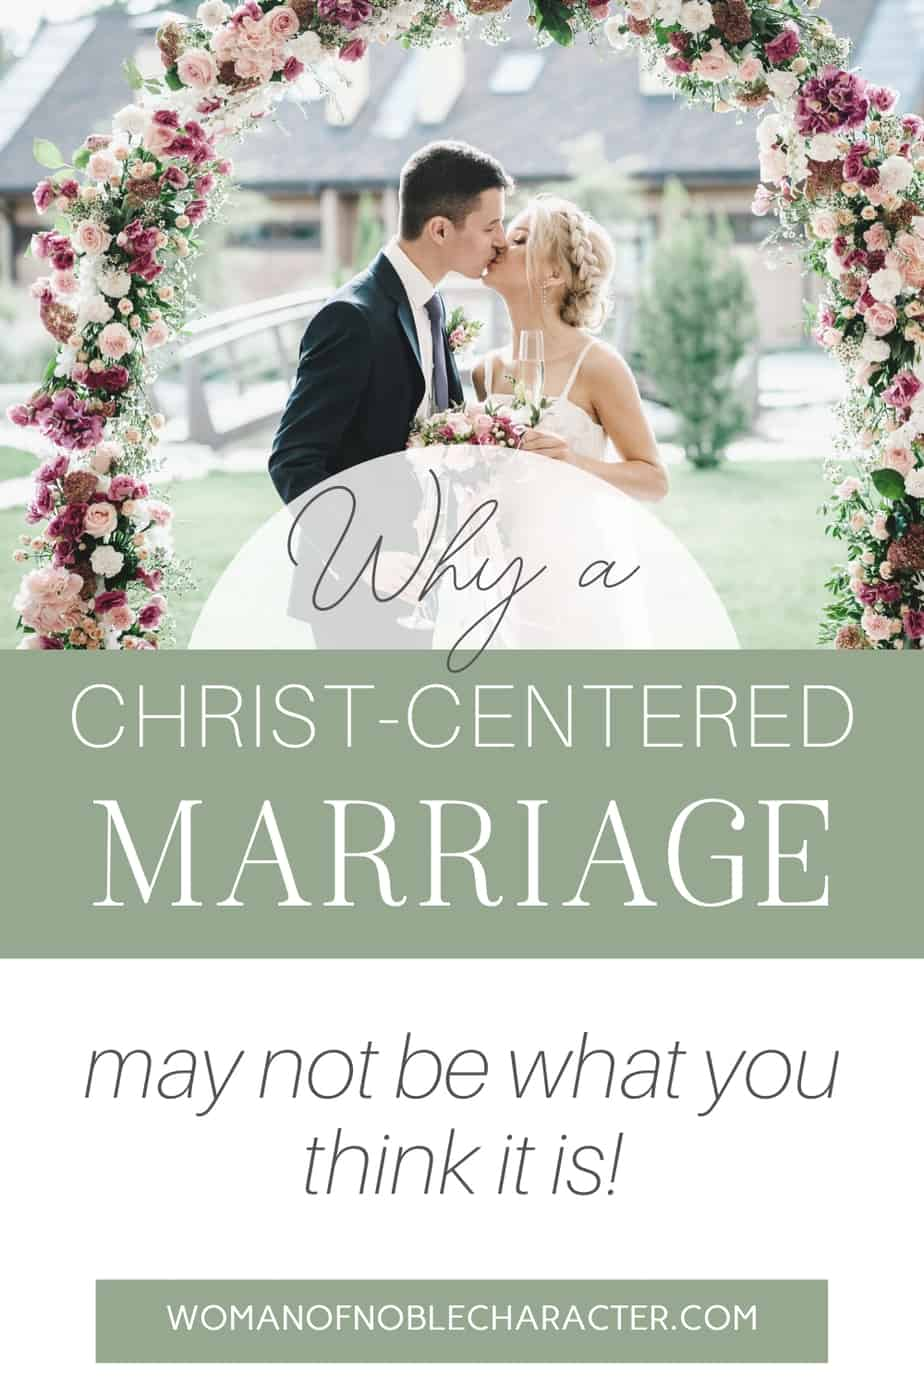 An image of a bride and groom under a wedding arch and text that says Why A Christ Centered Marriage May Not Be What You Think It Is